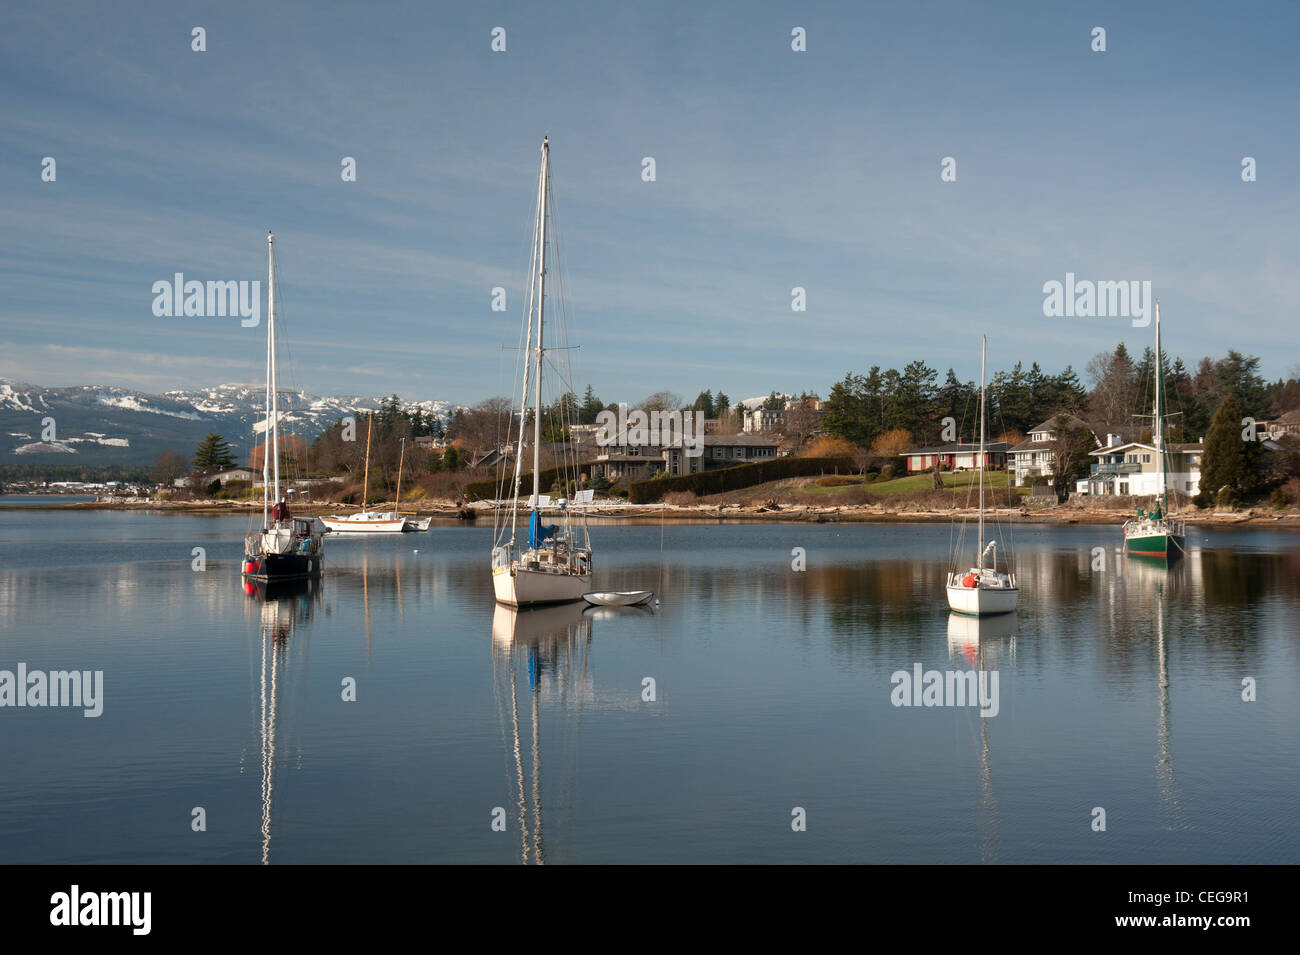 Comox harbour Yacht moorings and float plane berth, Vancouver Island British Columbia Canada.  SCO 7979 - Stock Image